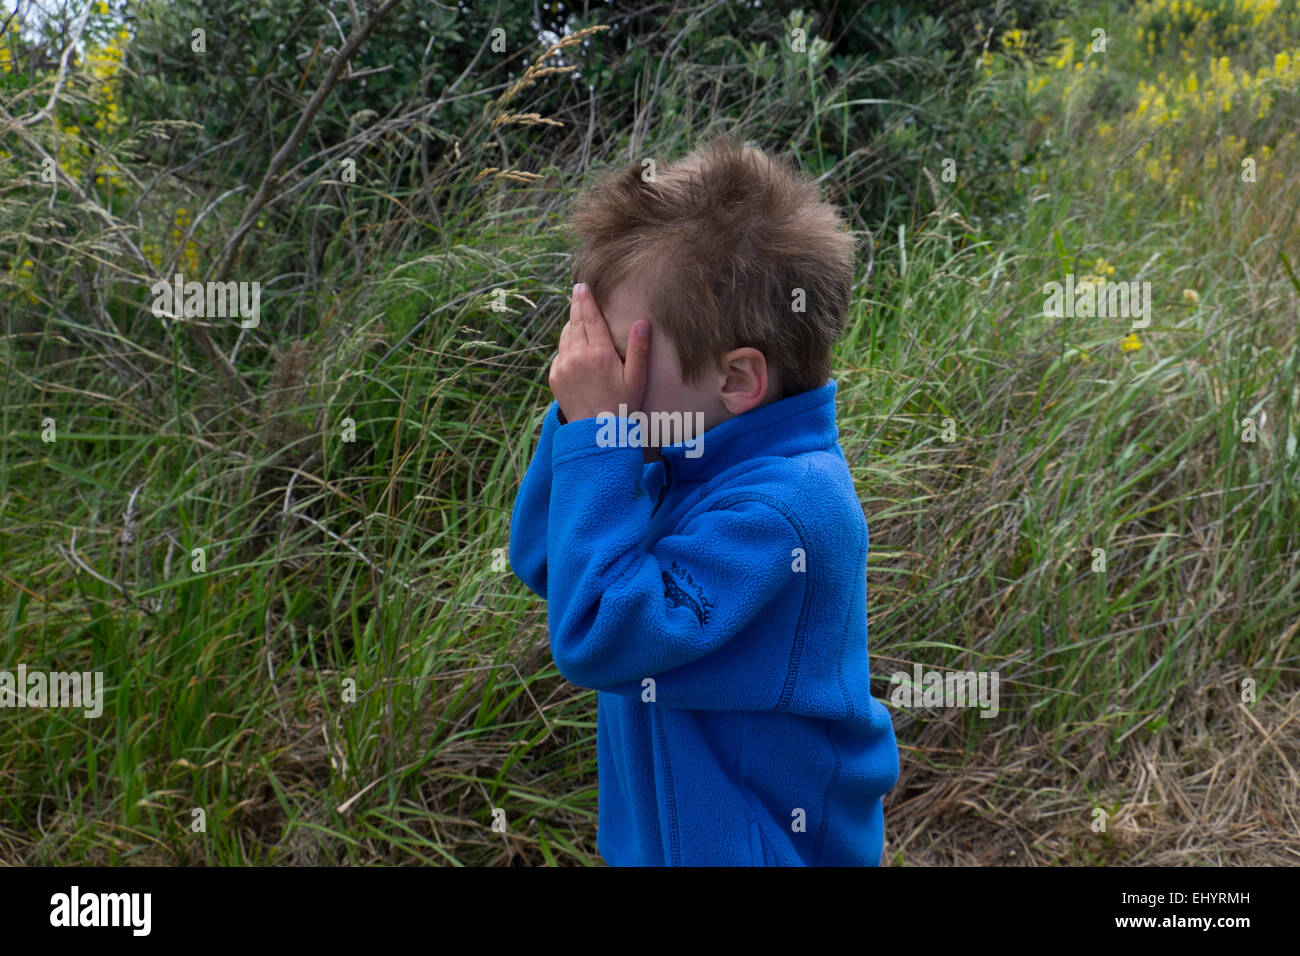 Child playing hide and seek in field, 4 year old boy - Stock Image